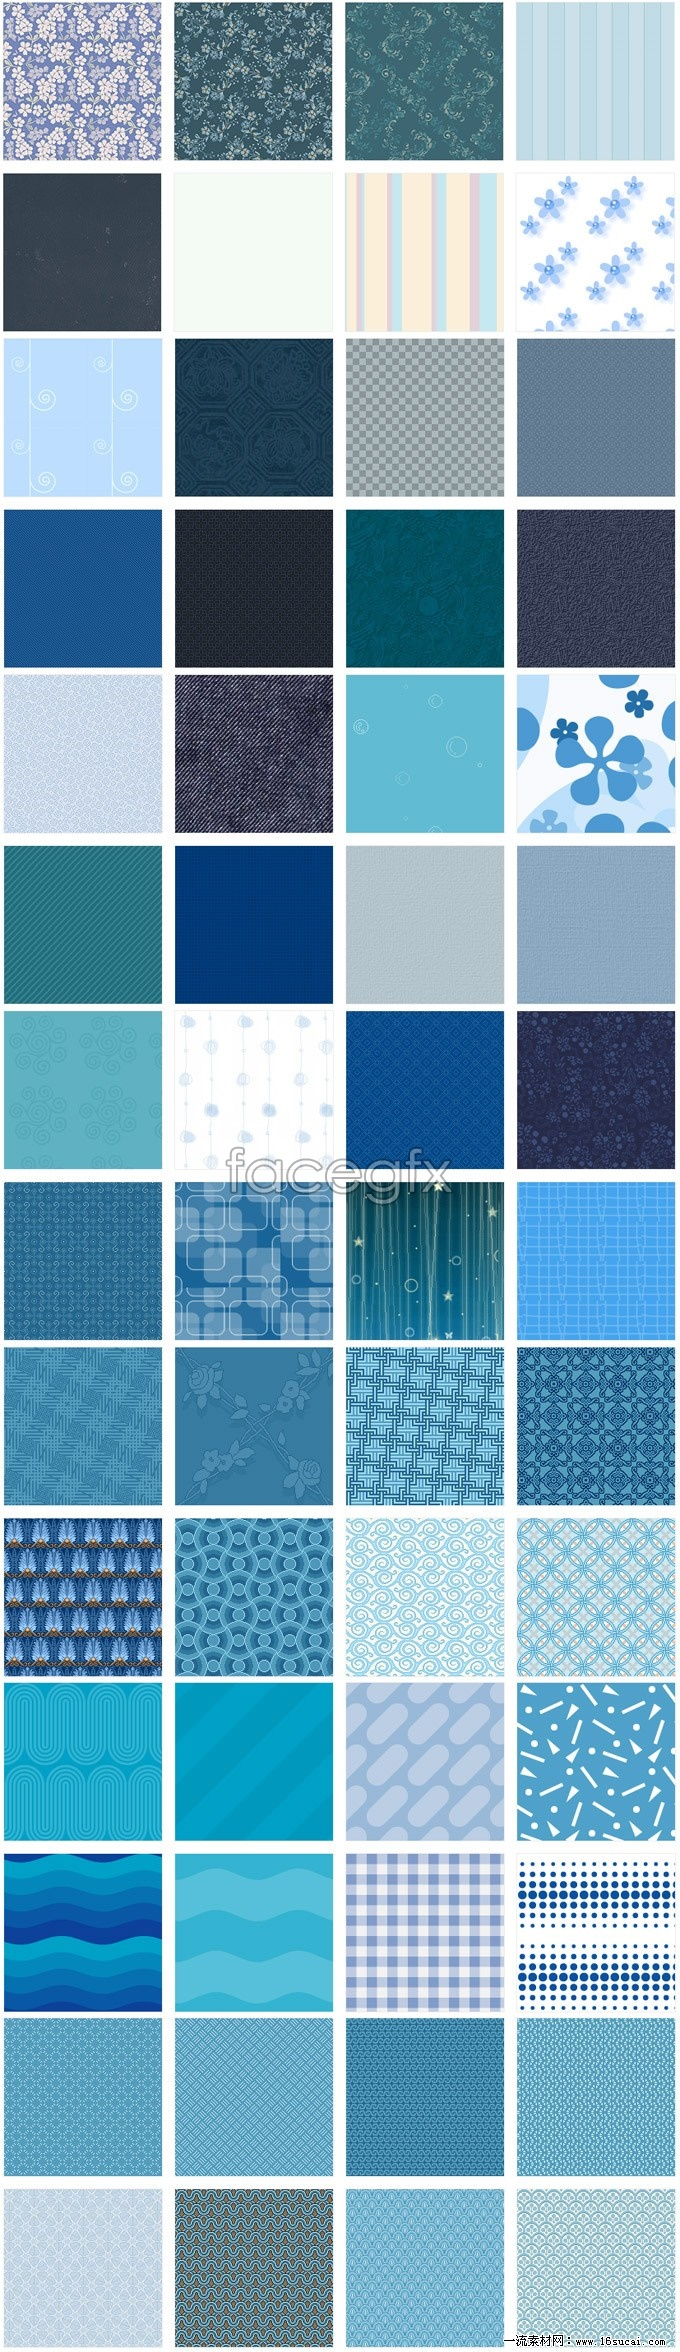 Blue page background graphic Pack